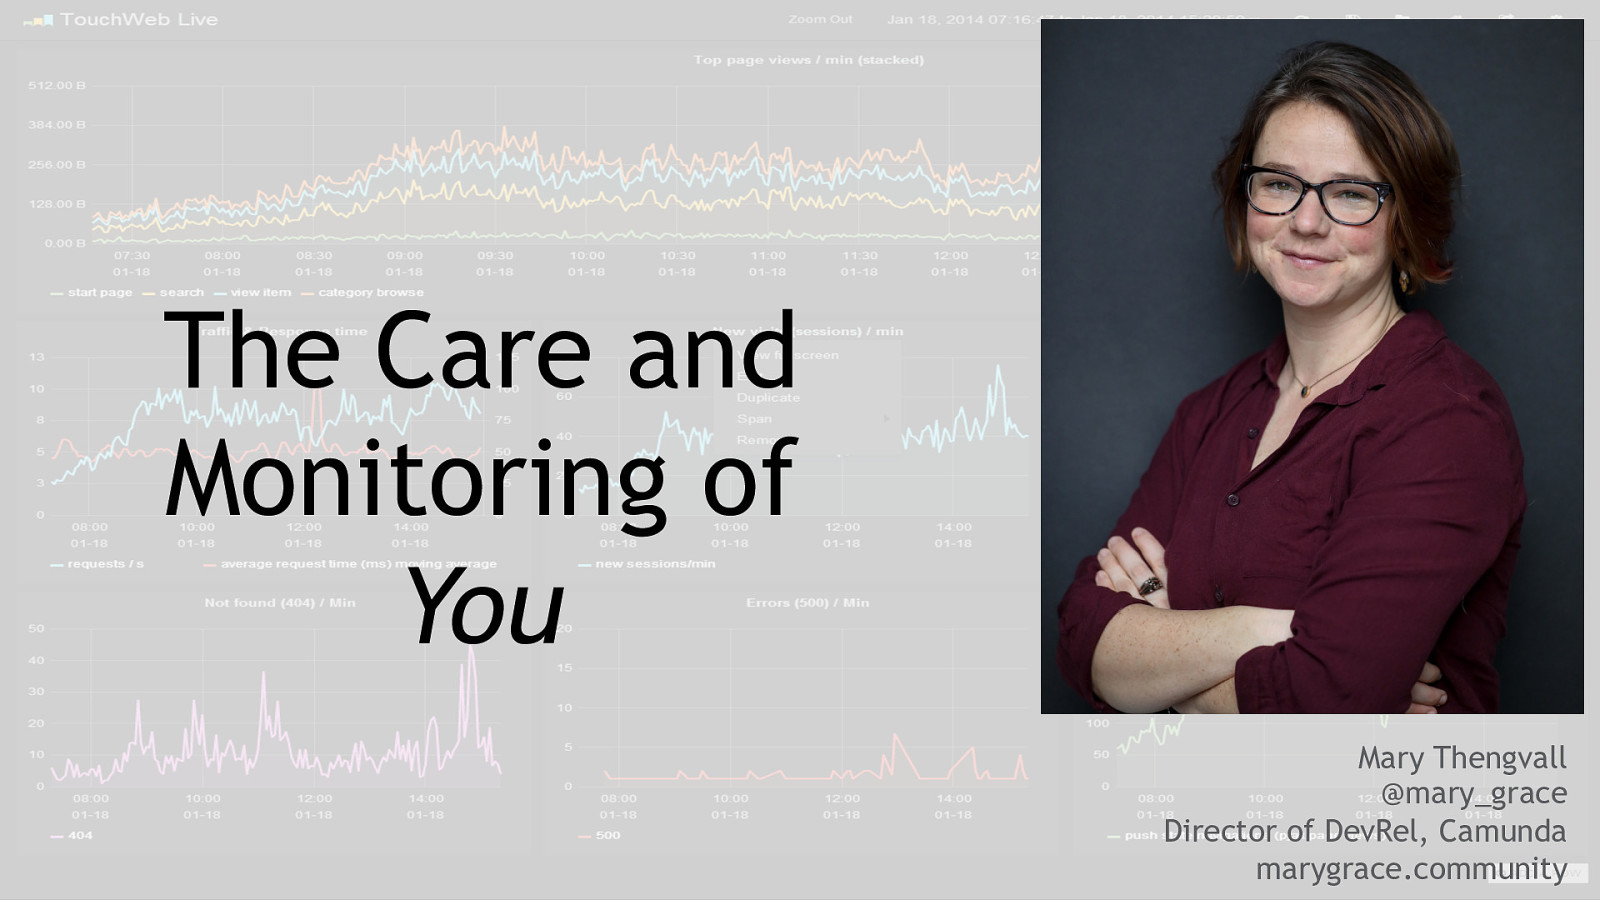 The Care and Monitoring of You